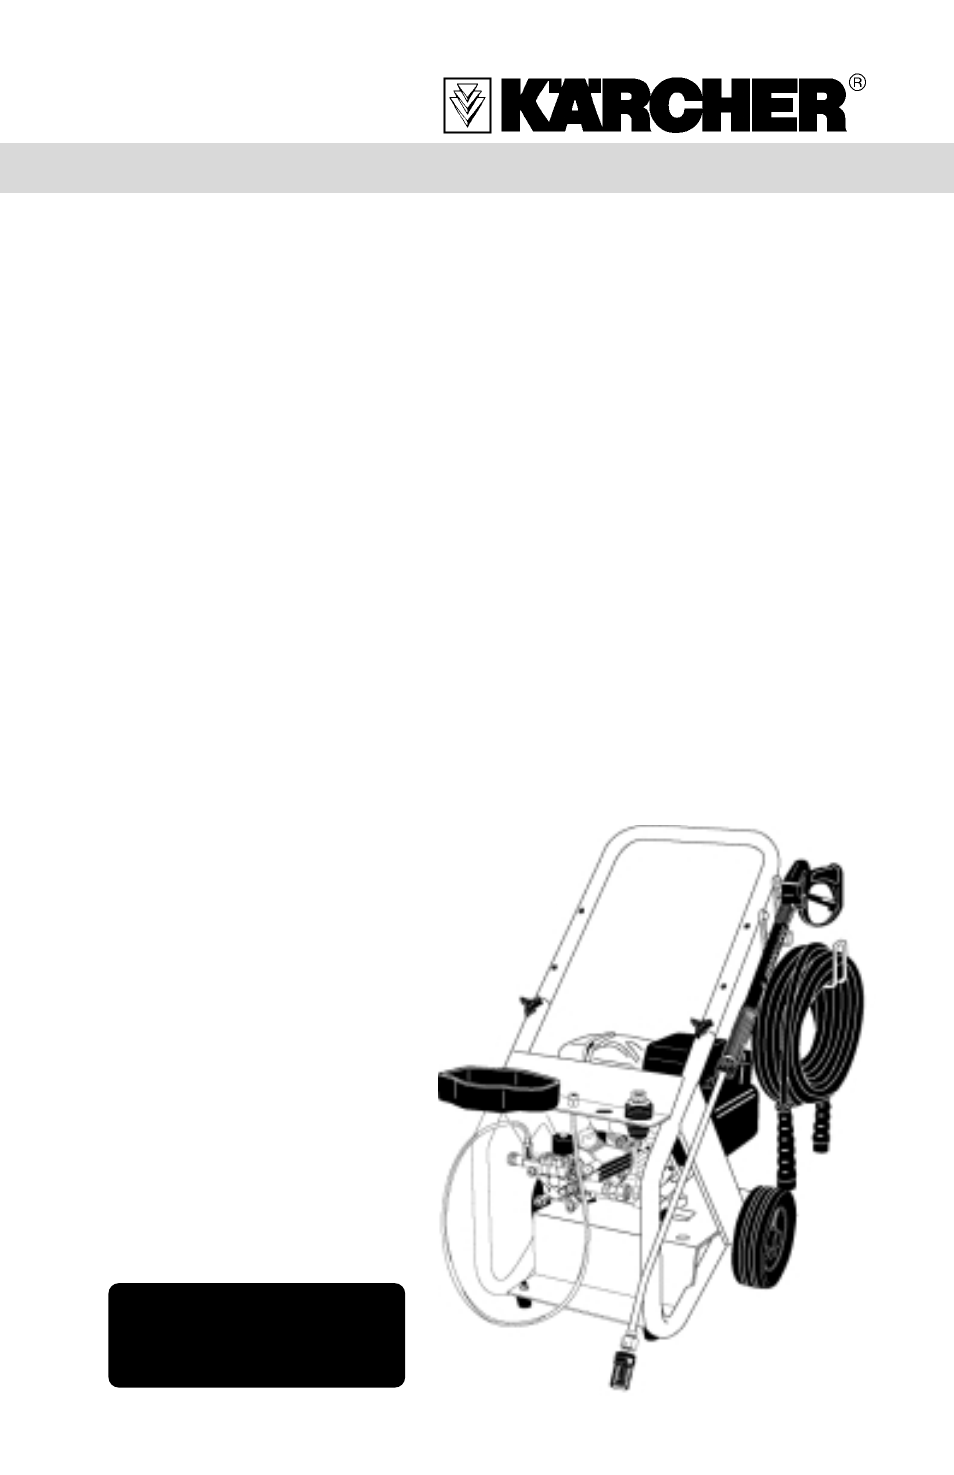 briggs and stratton 2500 psi pressure washer manual